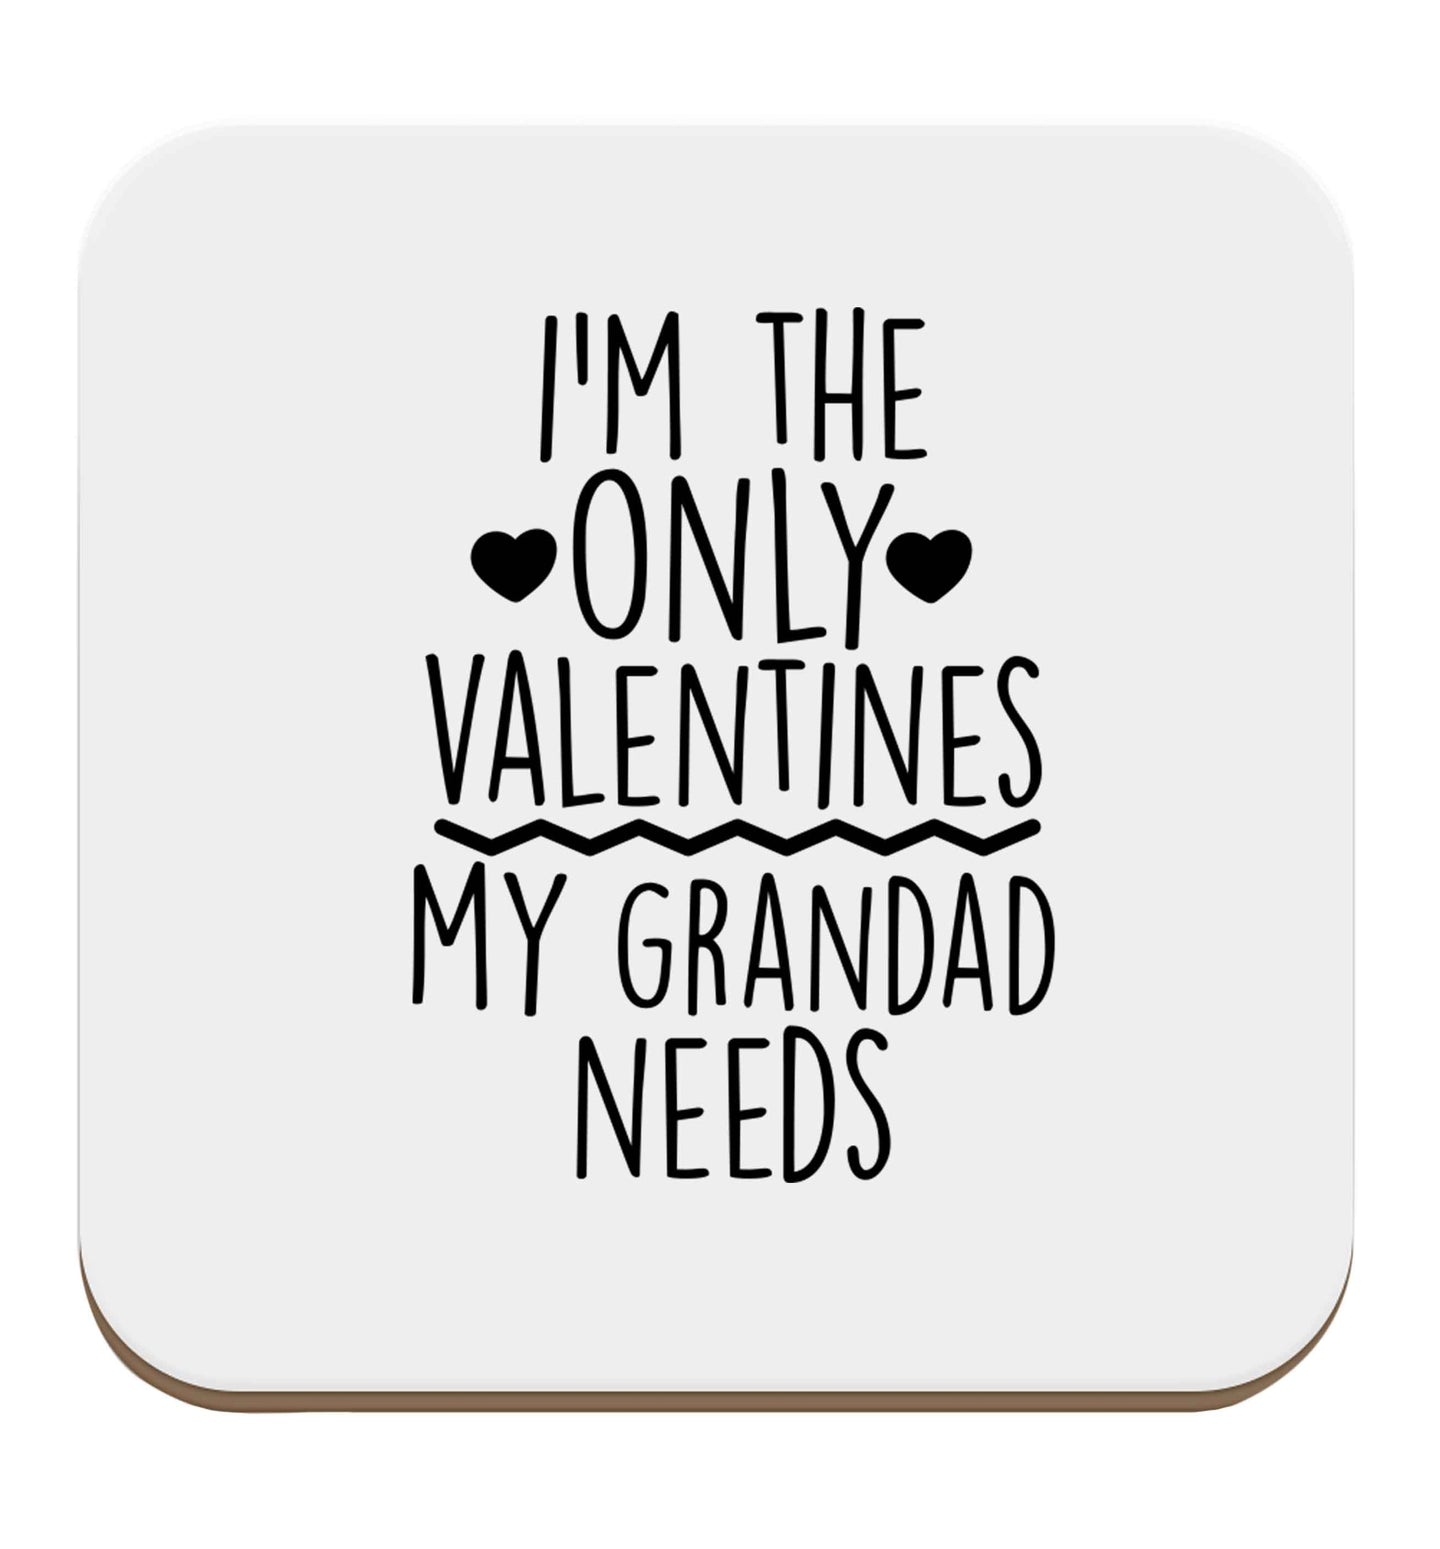 I'm the only valentines my grandad needs set of four coasters